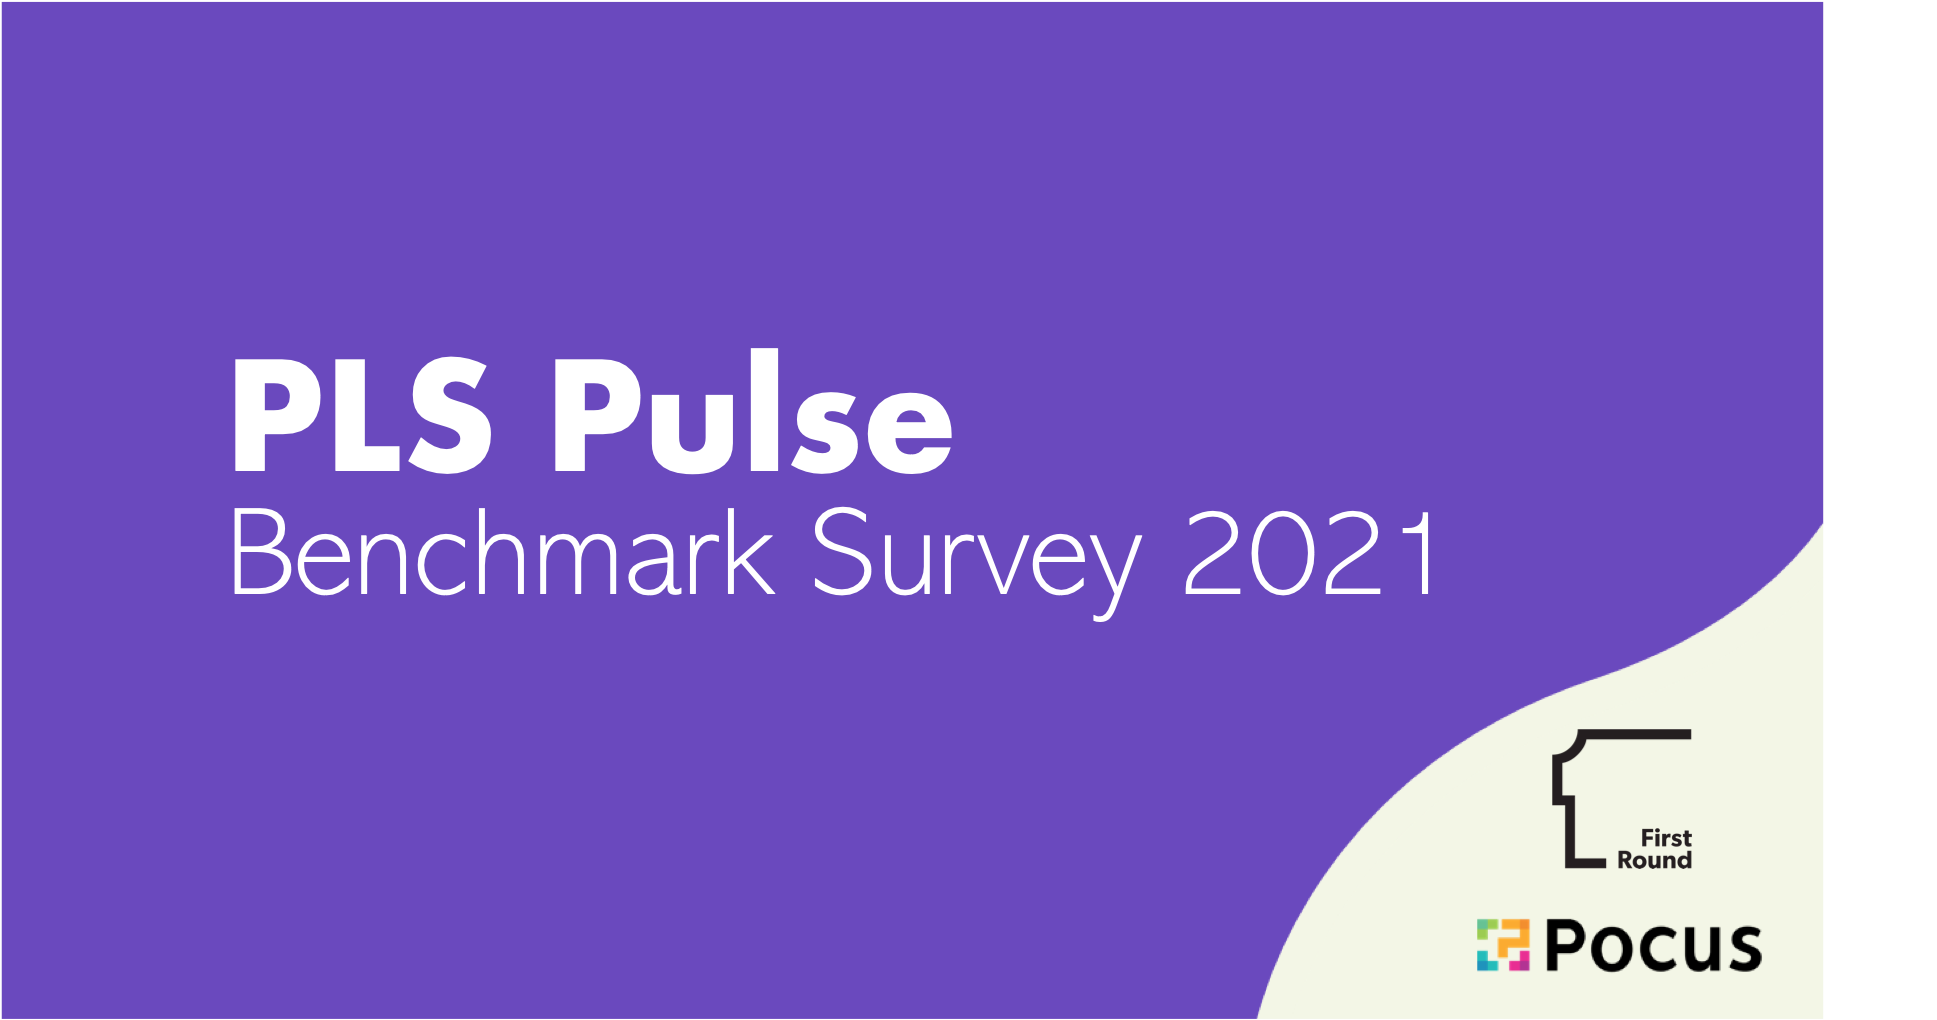 Introducing the Product-Led Sales Pulse Benchmark Survey